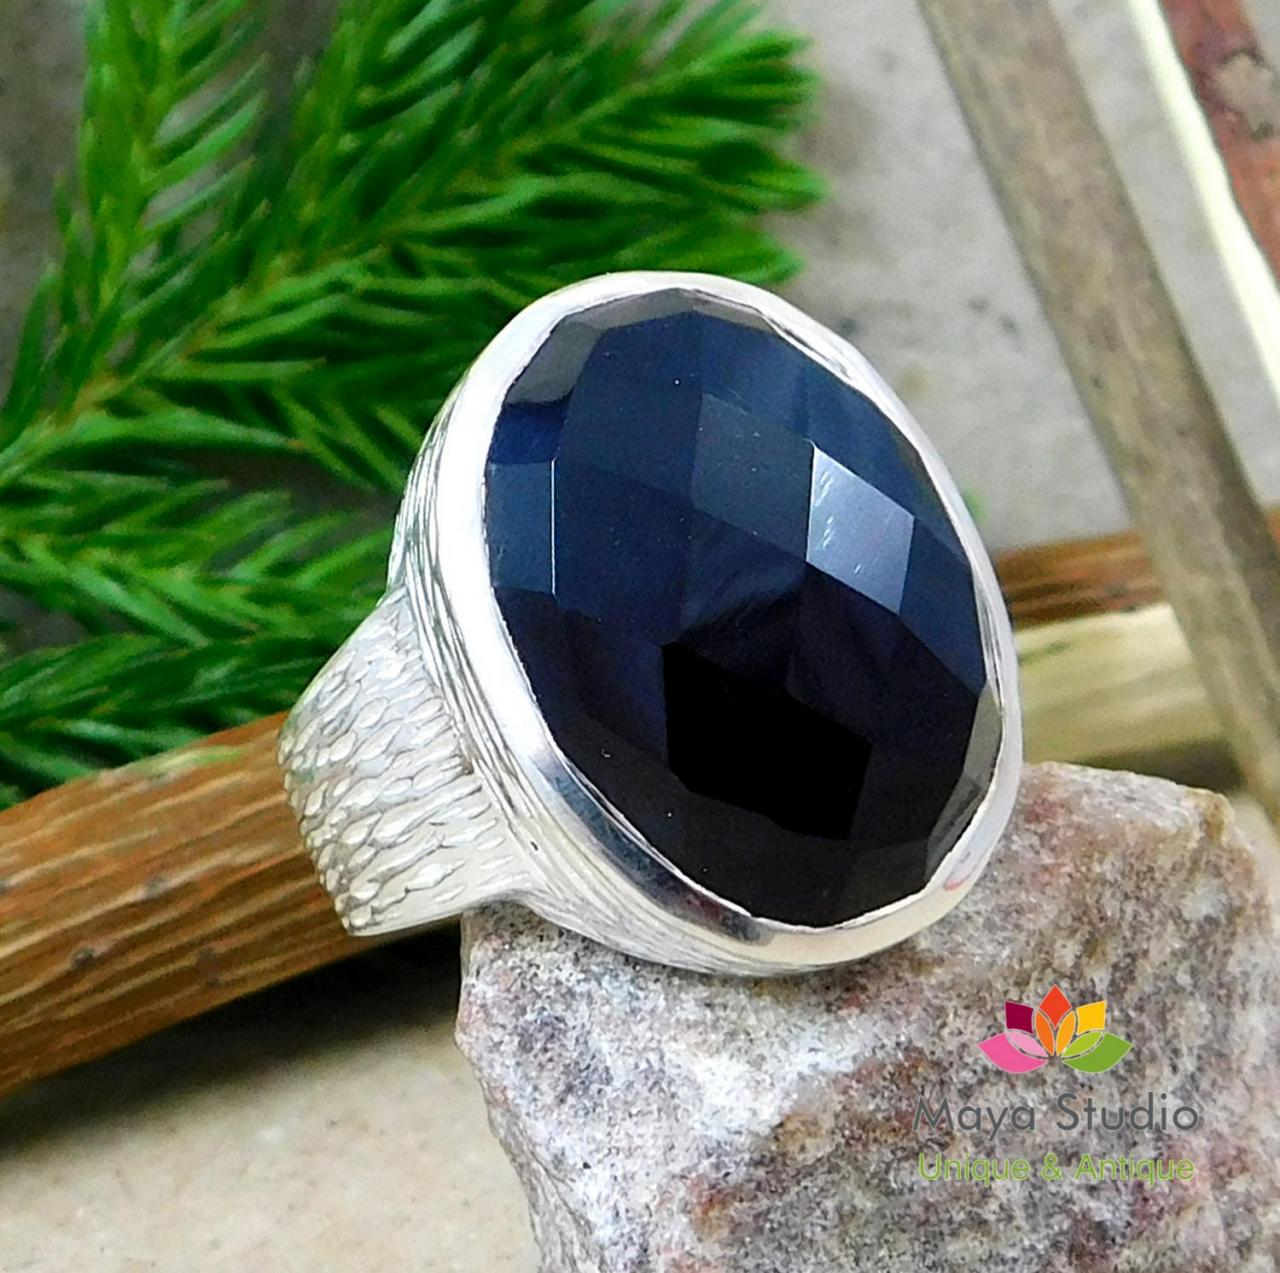 Impressive Black Onyx ring,Gift for Dad,Solitaire onyx Ring,925 sterling silver men/women Jewelry,Textured Wide Band,Gift for Grandmother